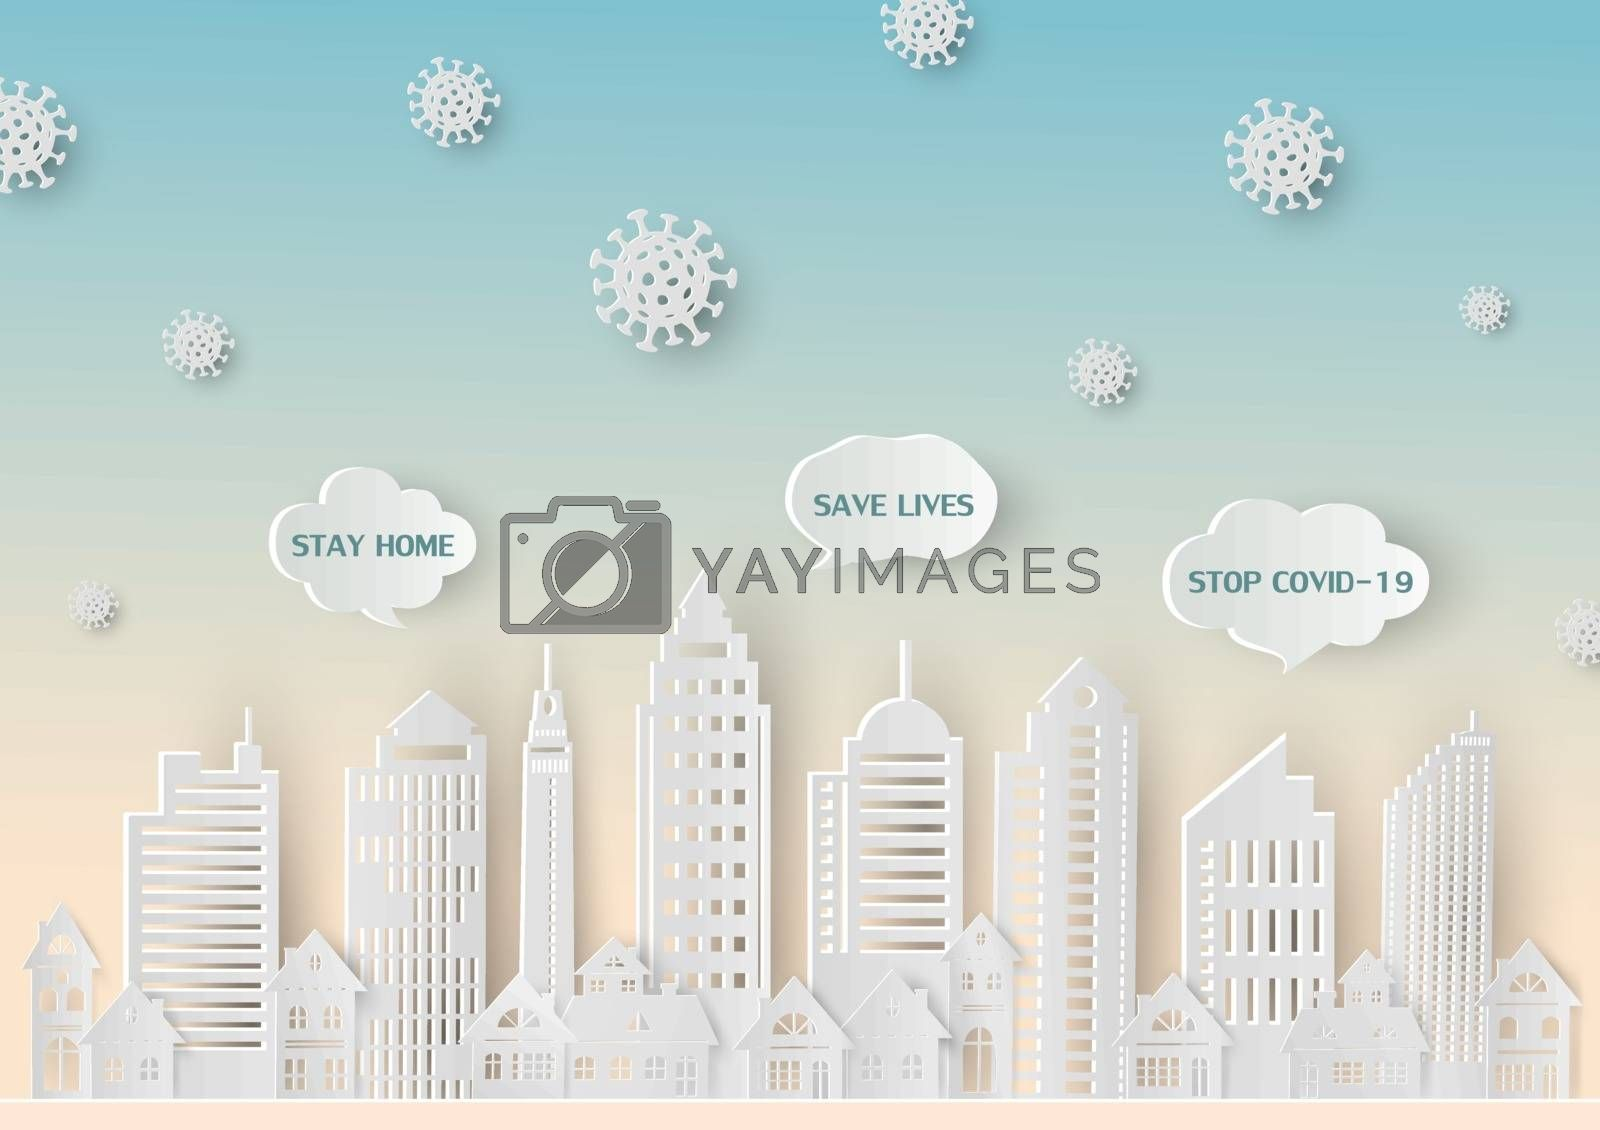 Stop covid-19 coronavirus with concept stay at home save lives on paper art style,vector illustration